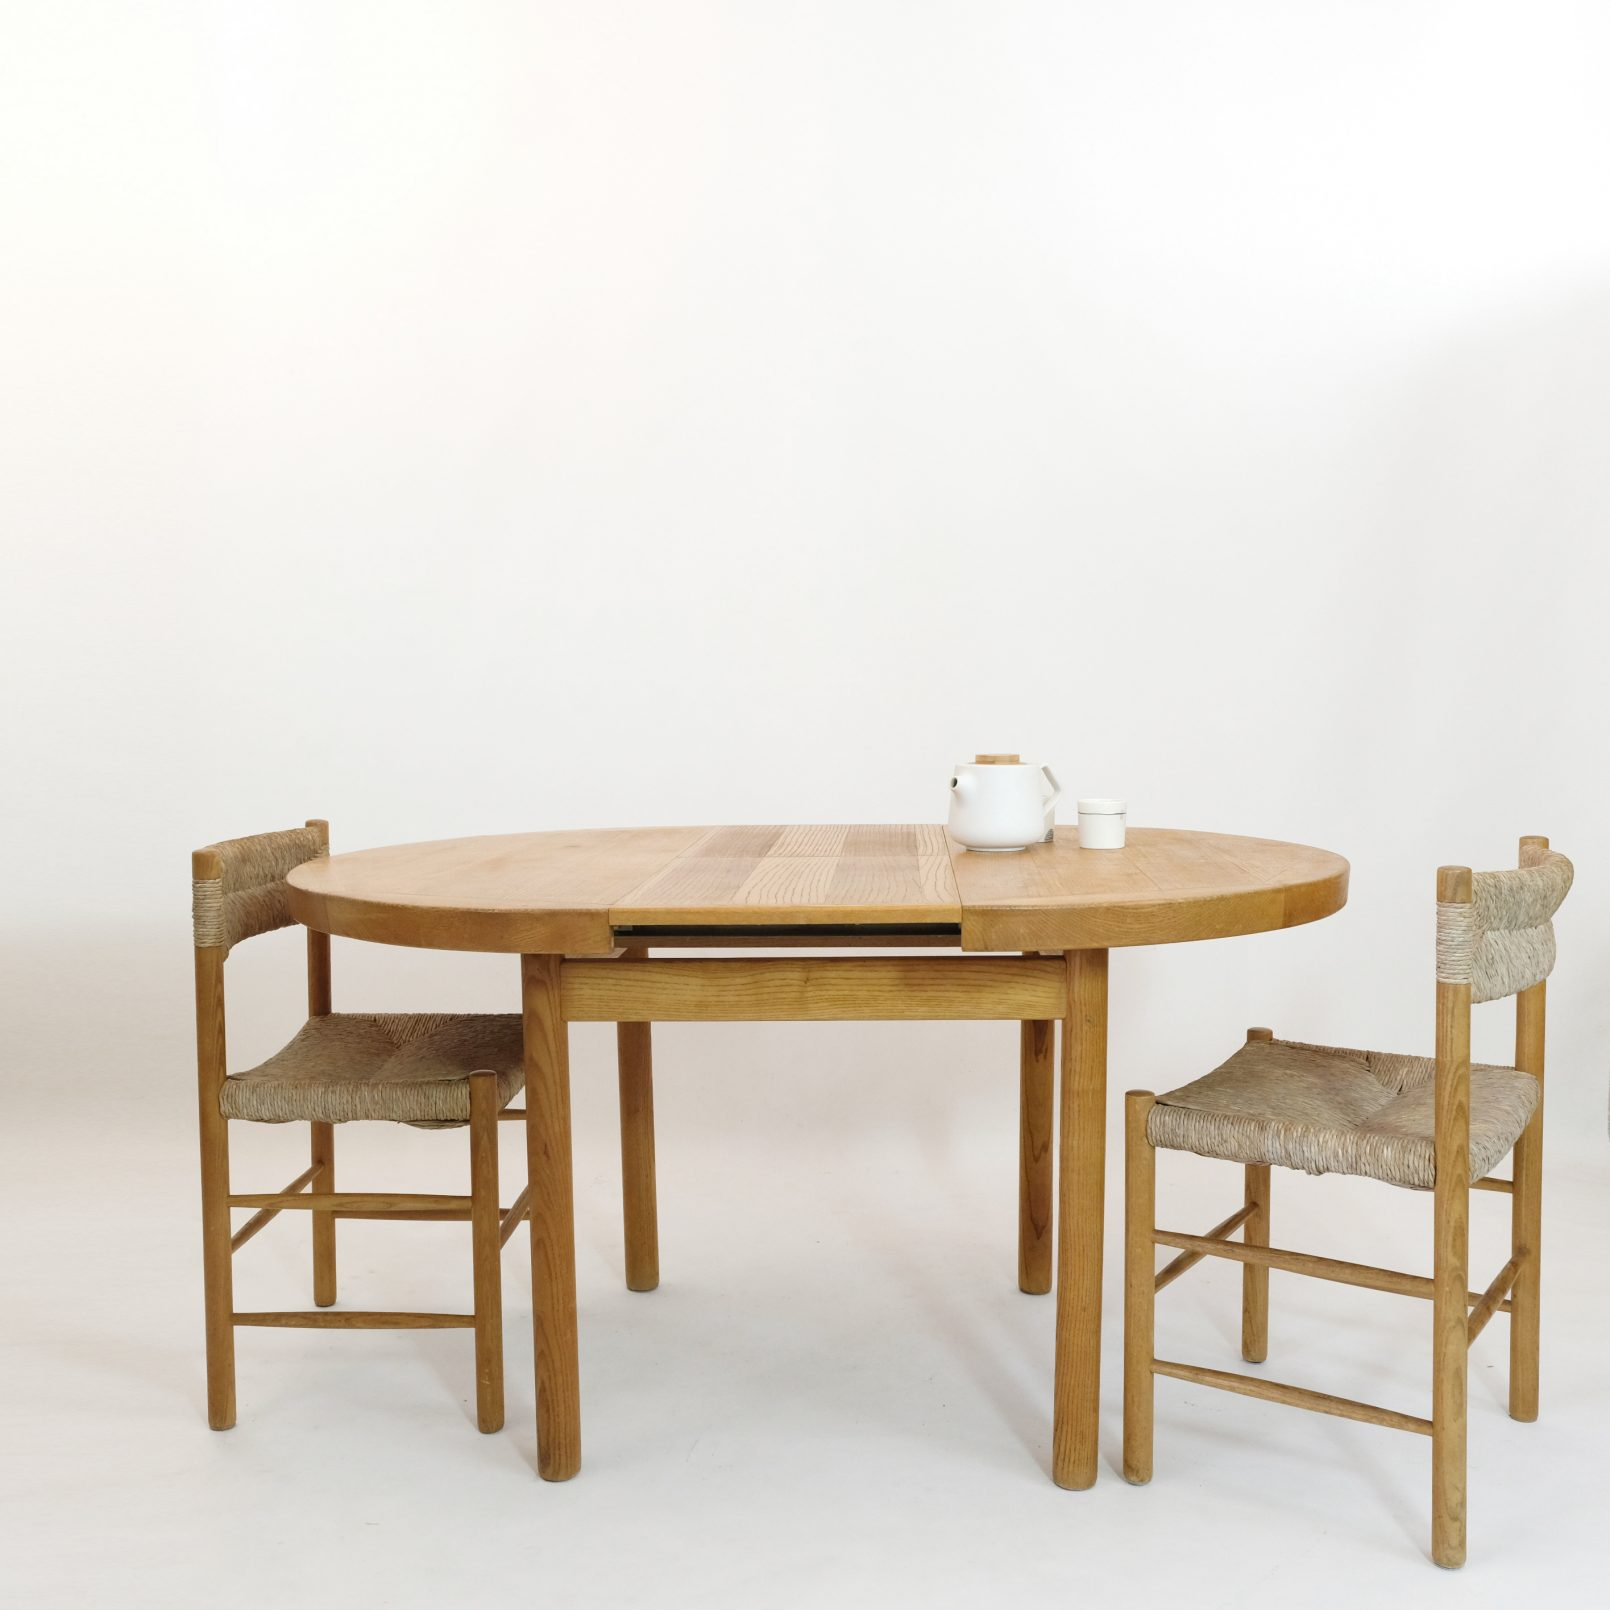 Dordogne table with an extending leaf, Sentou, 1950s.